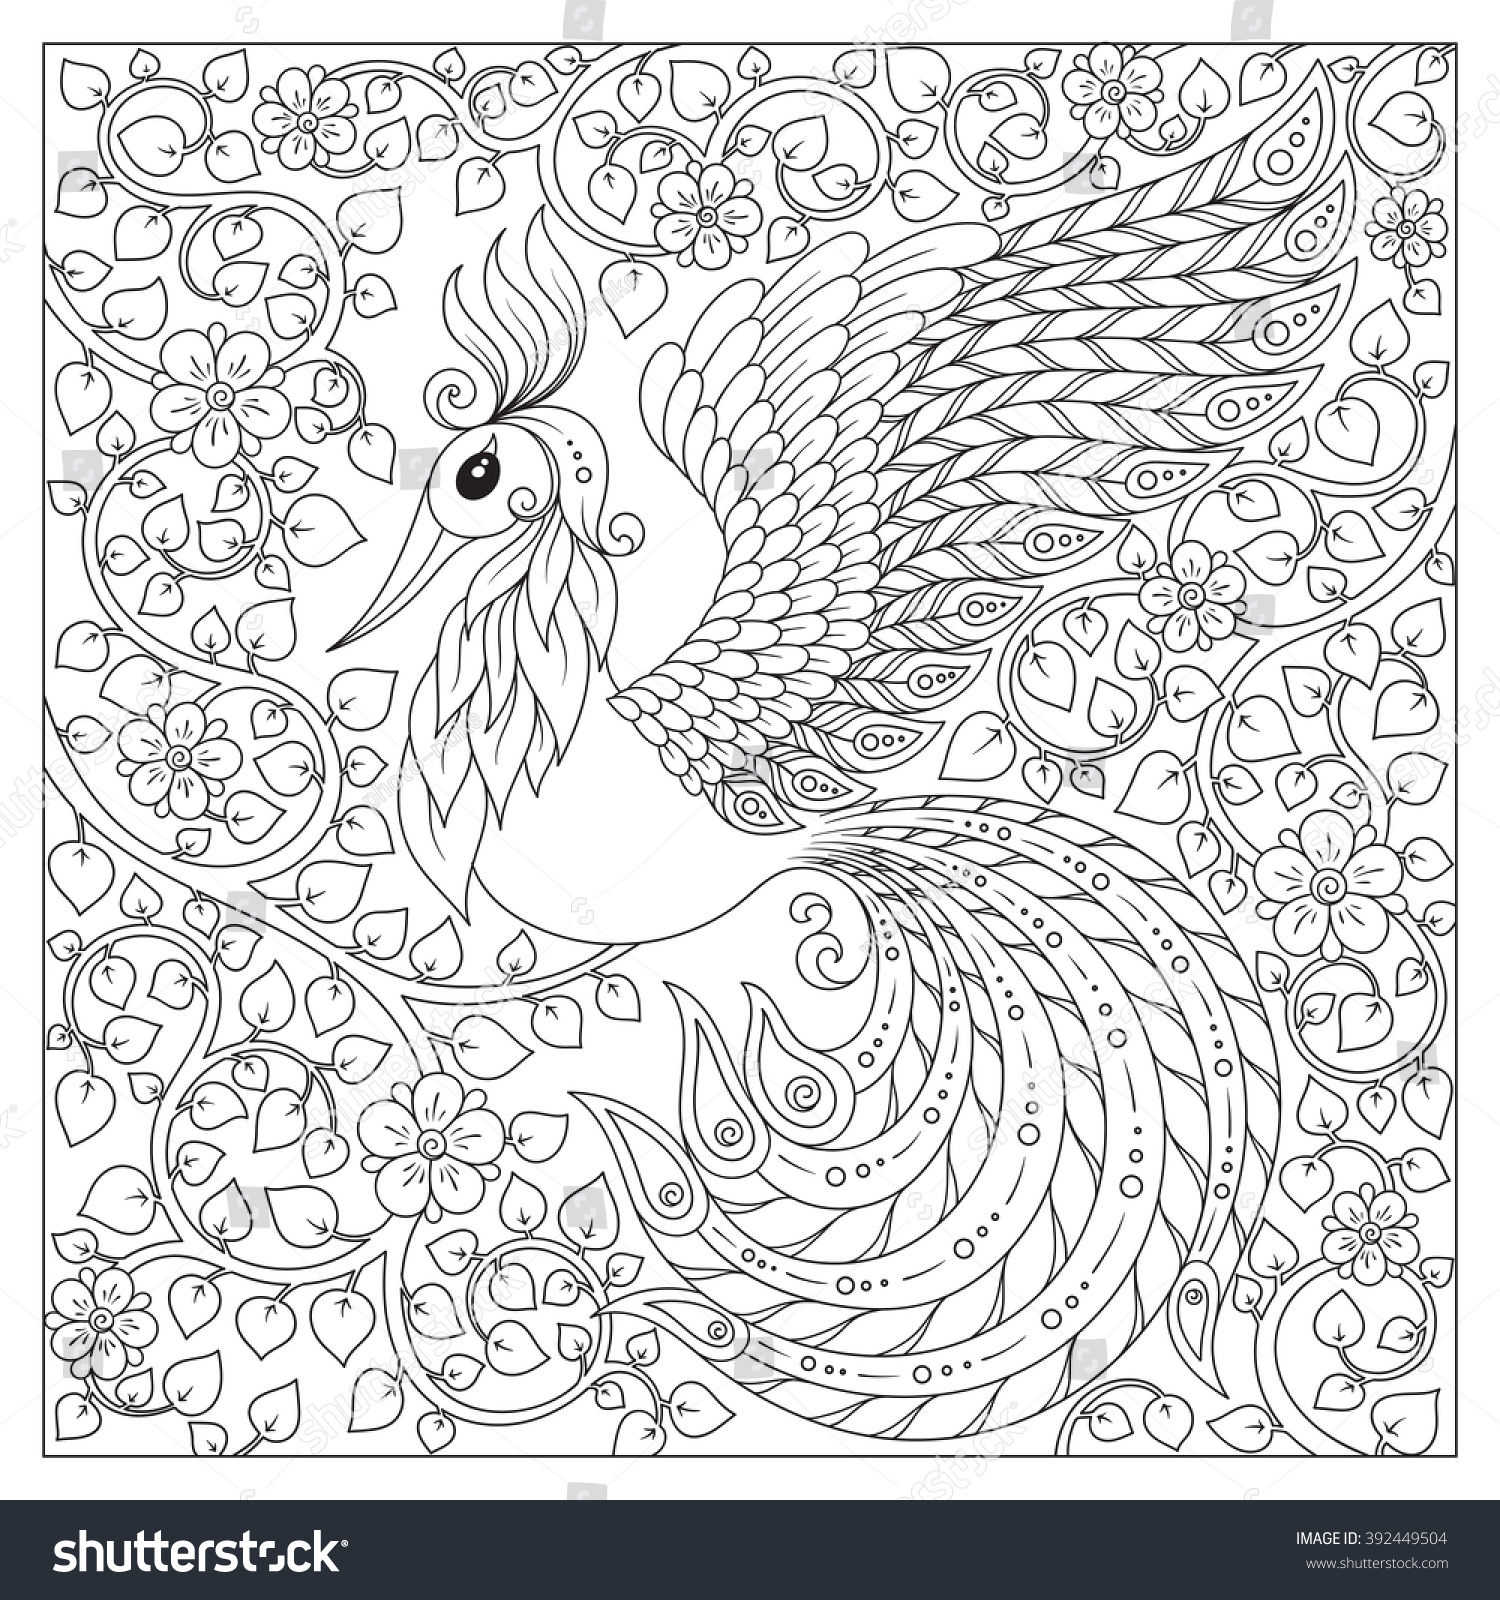 peacock antistress coloring page black stock vector